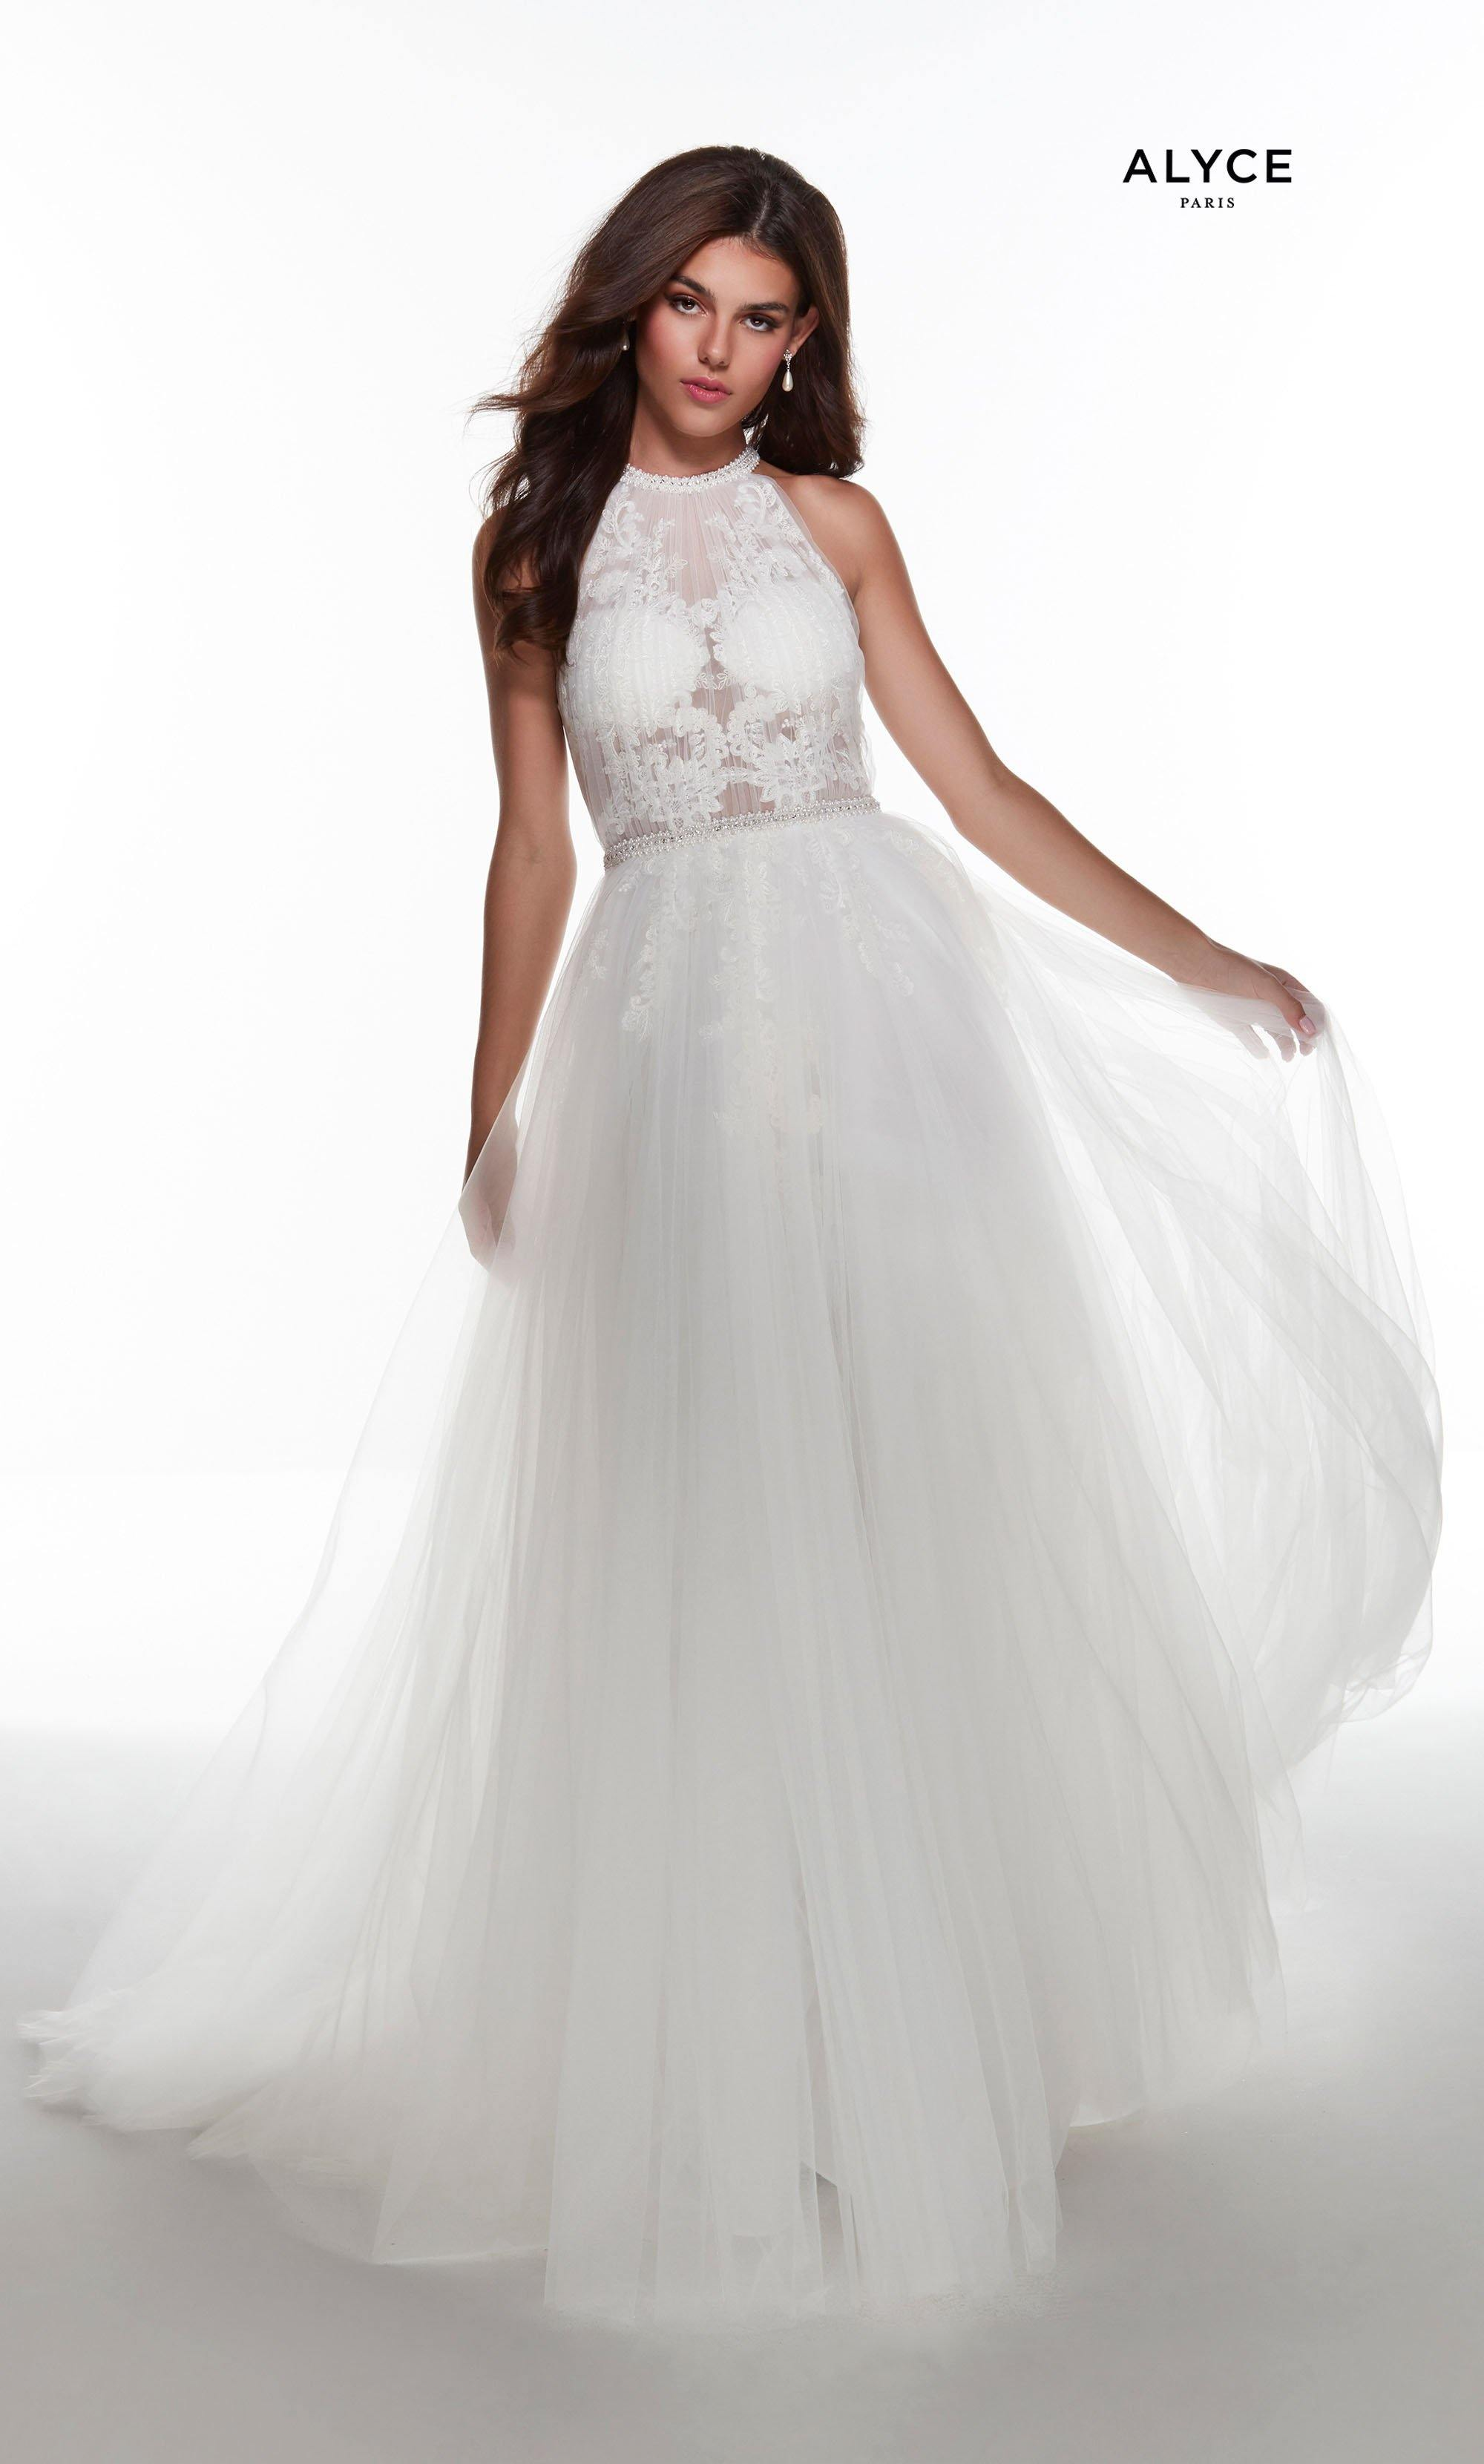 Solid Ivory tulle-lace informal wedding dress with a halter neckline, sheer lace bodice, and beaded waistline